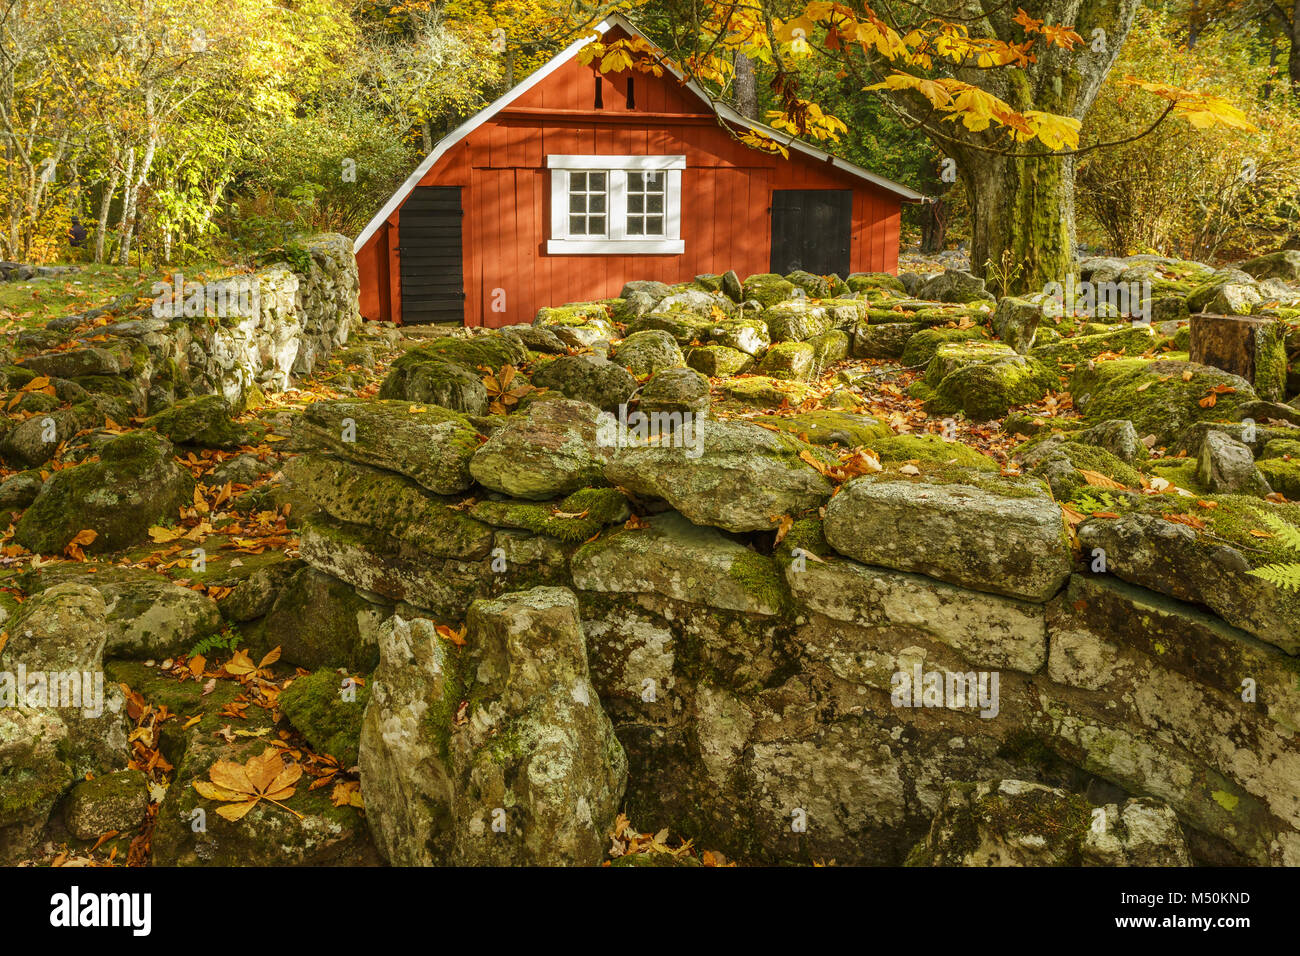 Autumn in the garden with a garden shed Stock Photo: 175192457 - Alamy